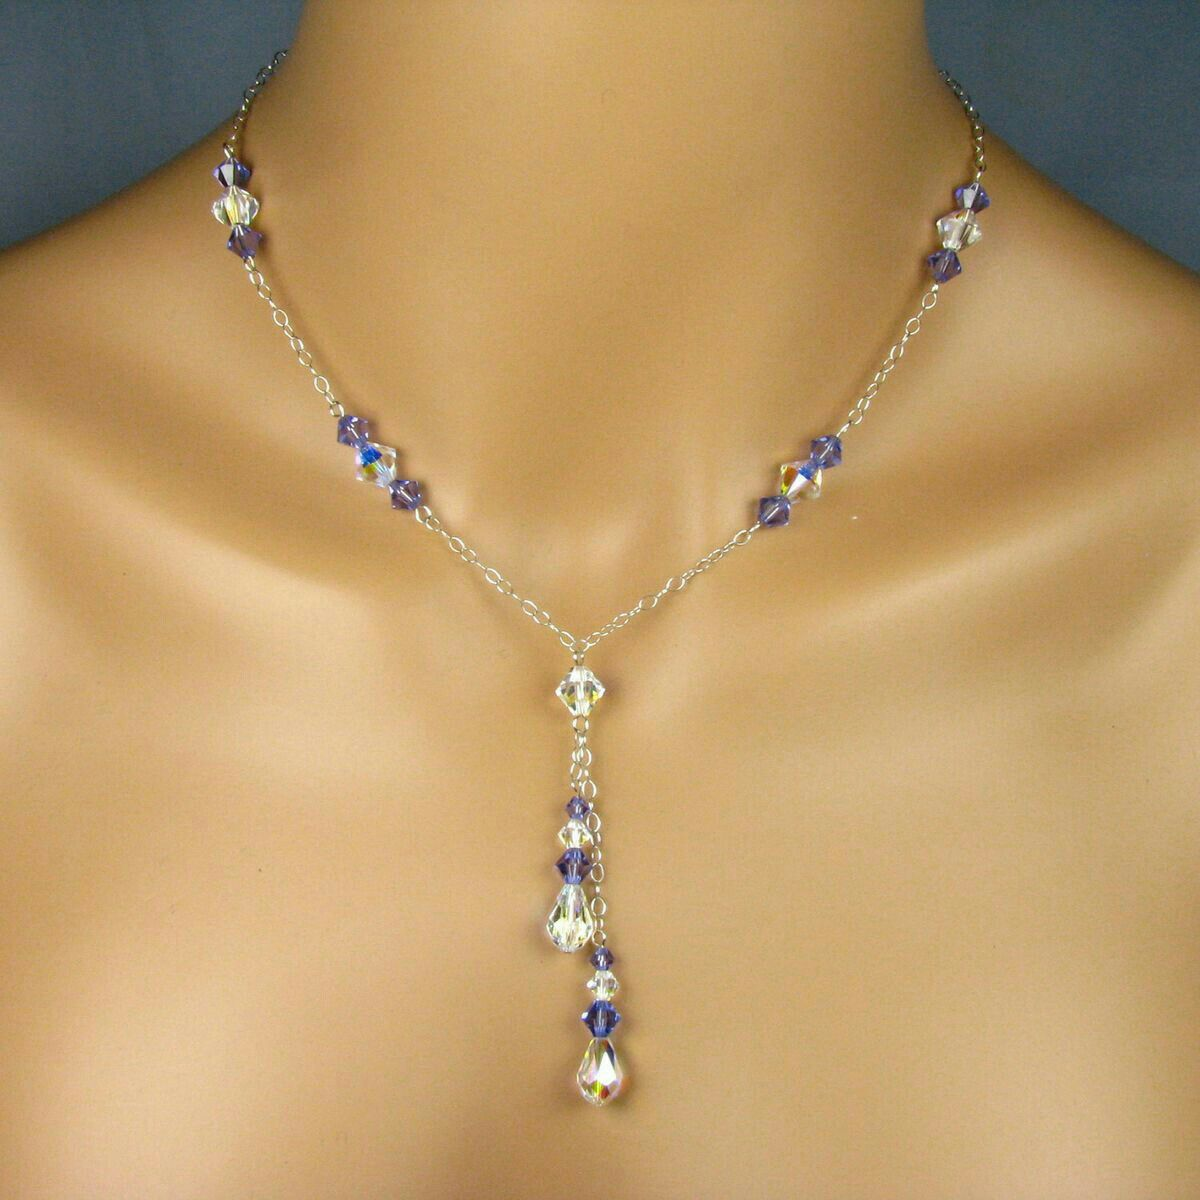 Pin by Lickinem Too on Beading Pinterest Beads Jewelry ideas